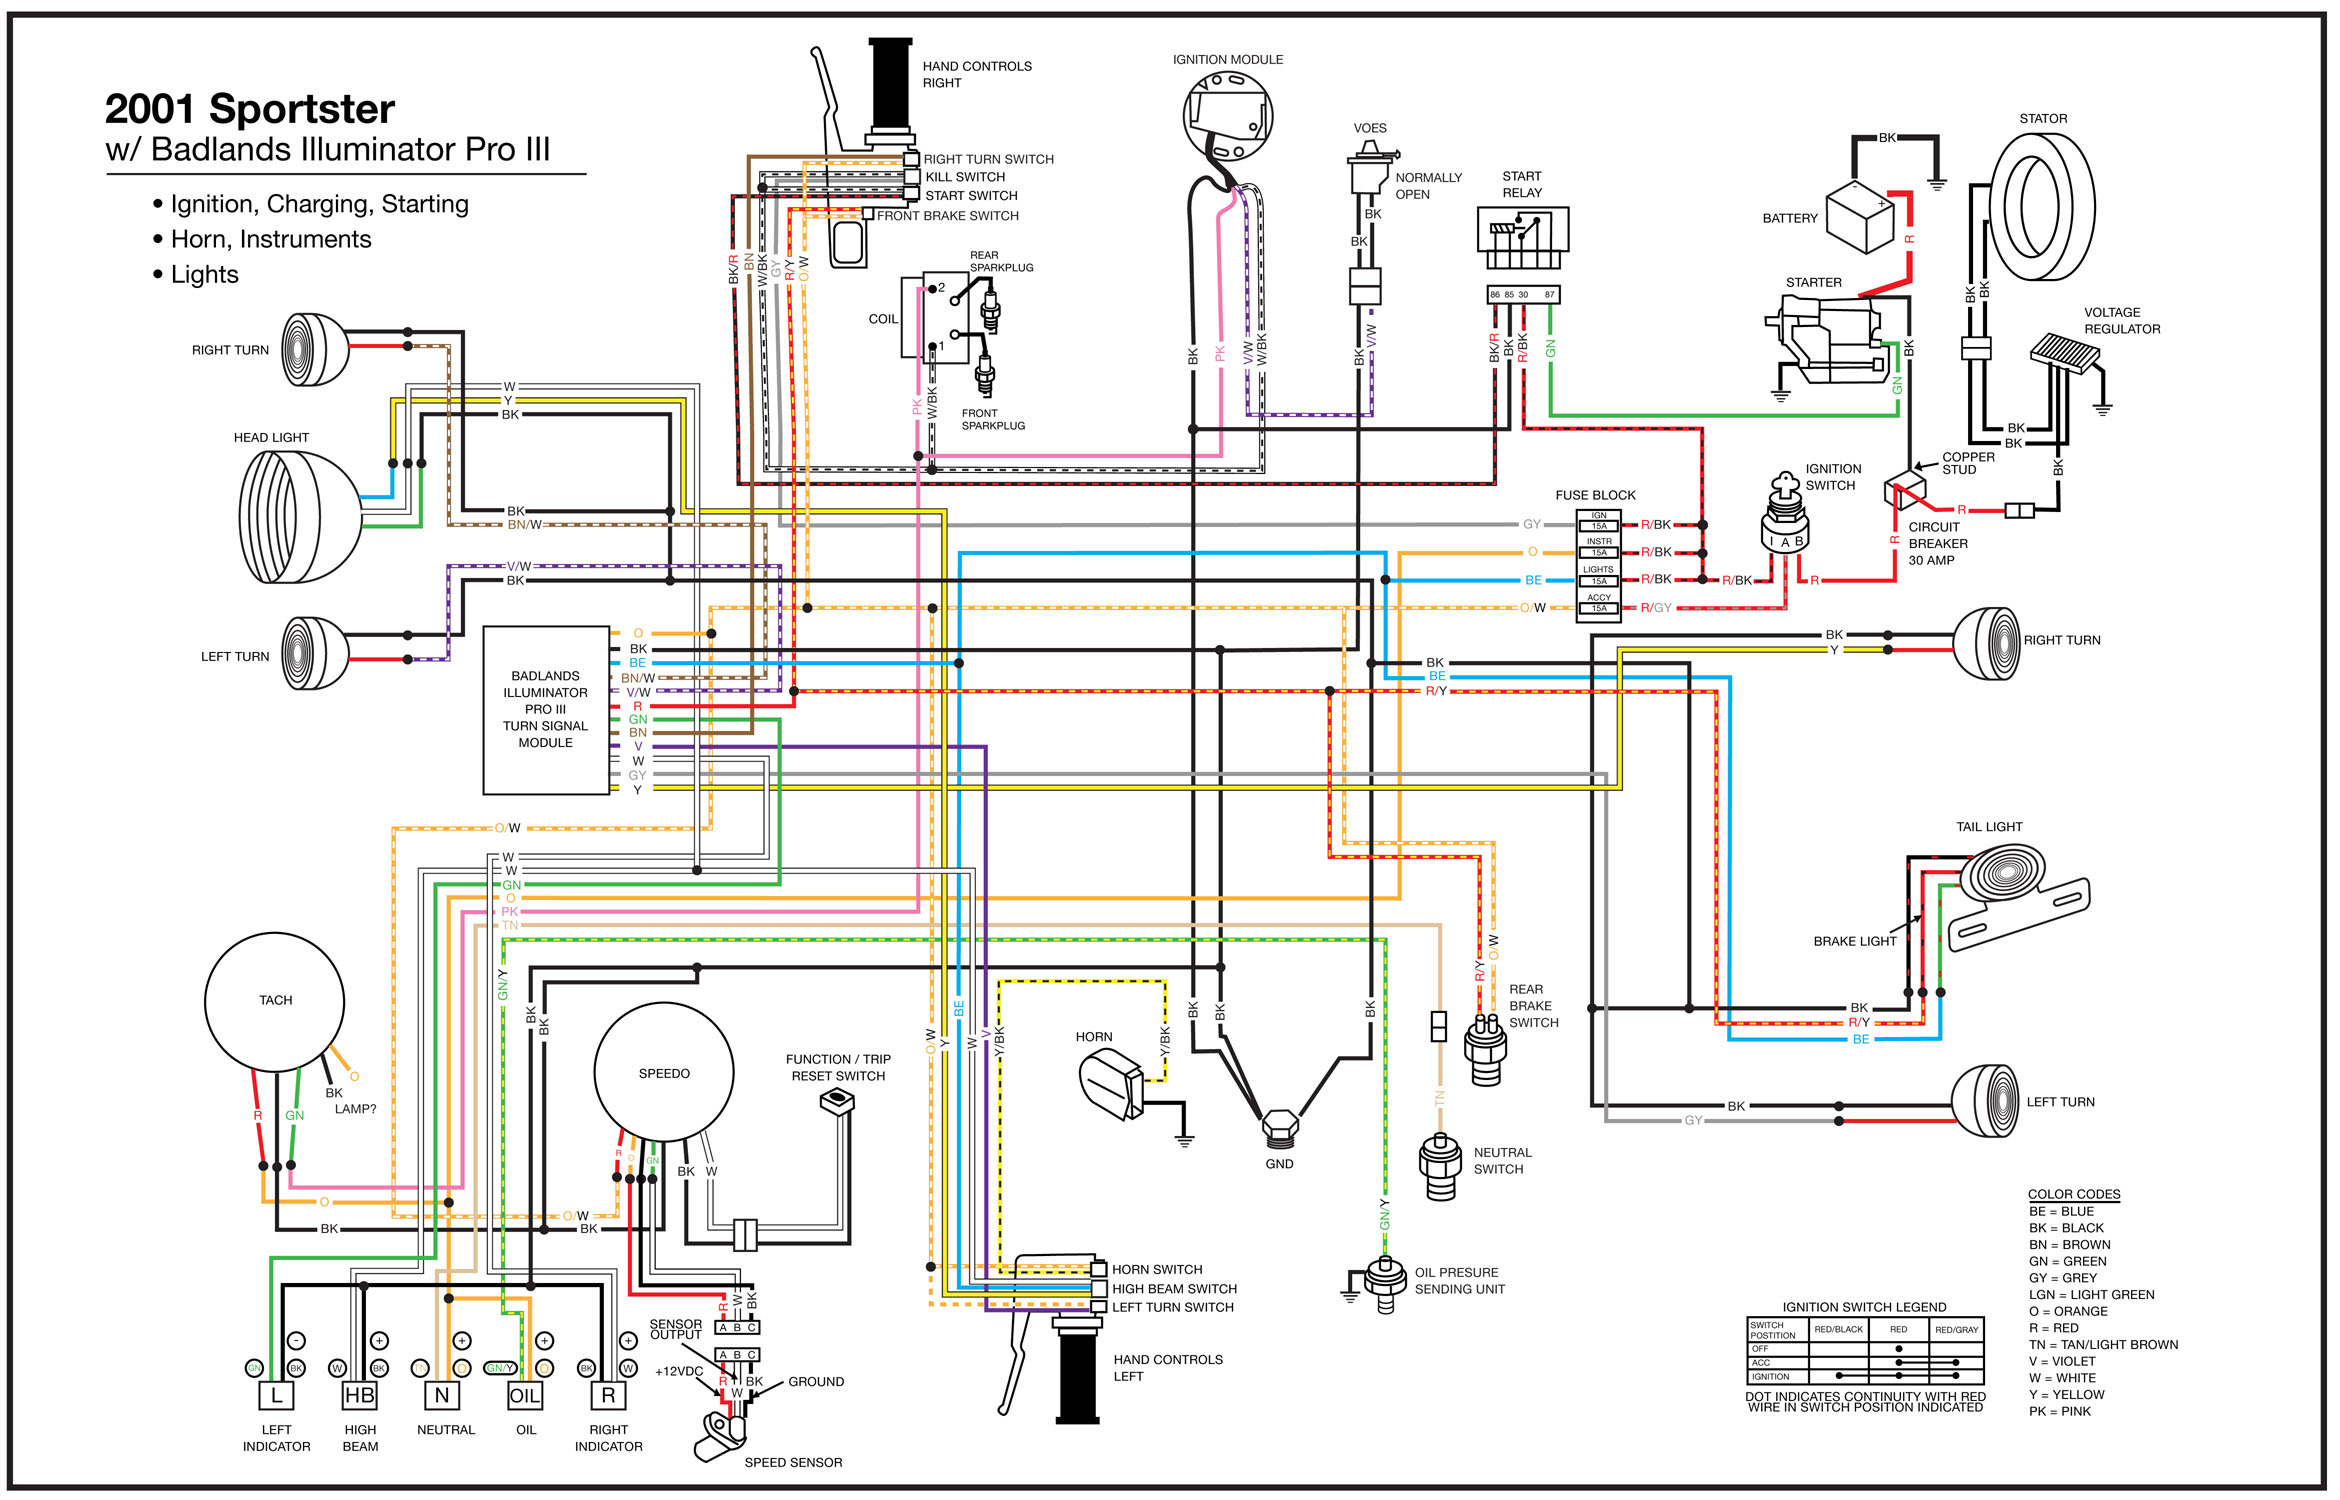 Wiring Diagram 2001 Harley Davidson Sportster – readingrat.net on harley davidson softail custom wiring diagram, harley dyna wiring diagram, harley panhead wiring diagram, gas tanks wiring diagram, harley switchback wiring diagram, evo sportster wiring diagram, harley street glide wiring diagram, harley wide glide wiring diagram, harley touring wiring diagram, harley night train wiring diagram, harley shovelhead wiring diagram,